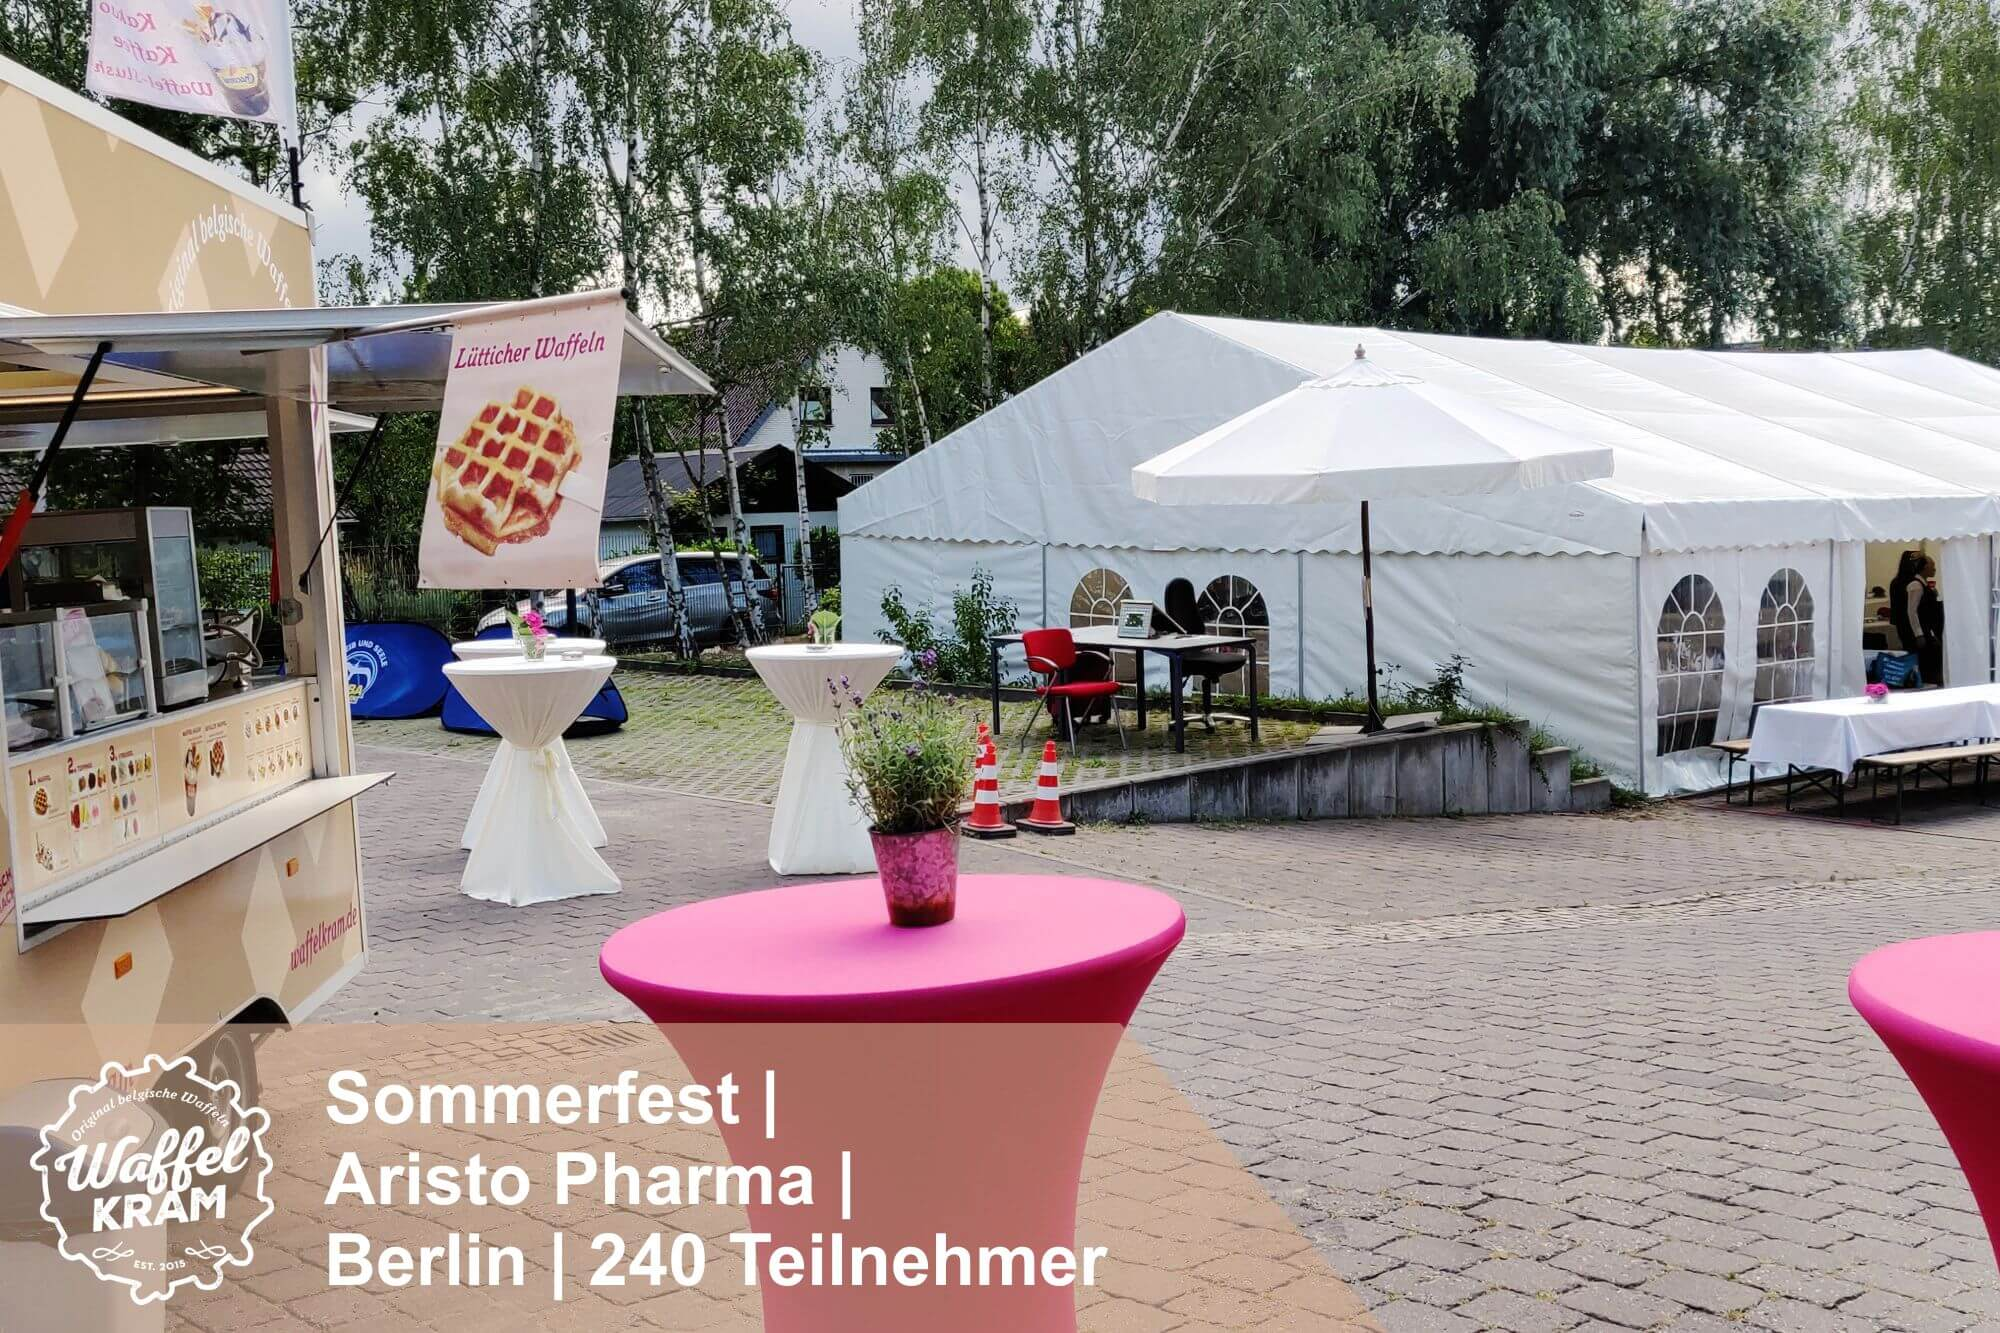 catering-sommerfest-aristo-pharma-berlin-tx